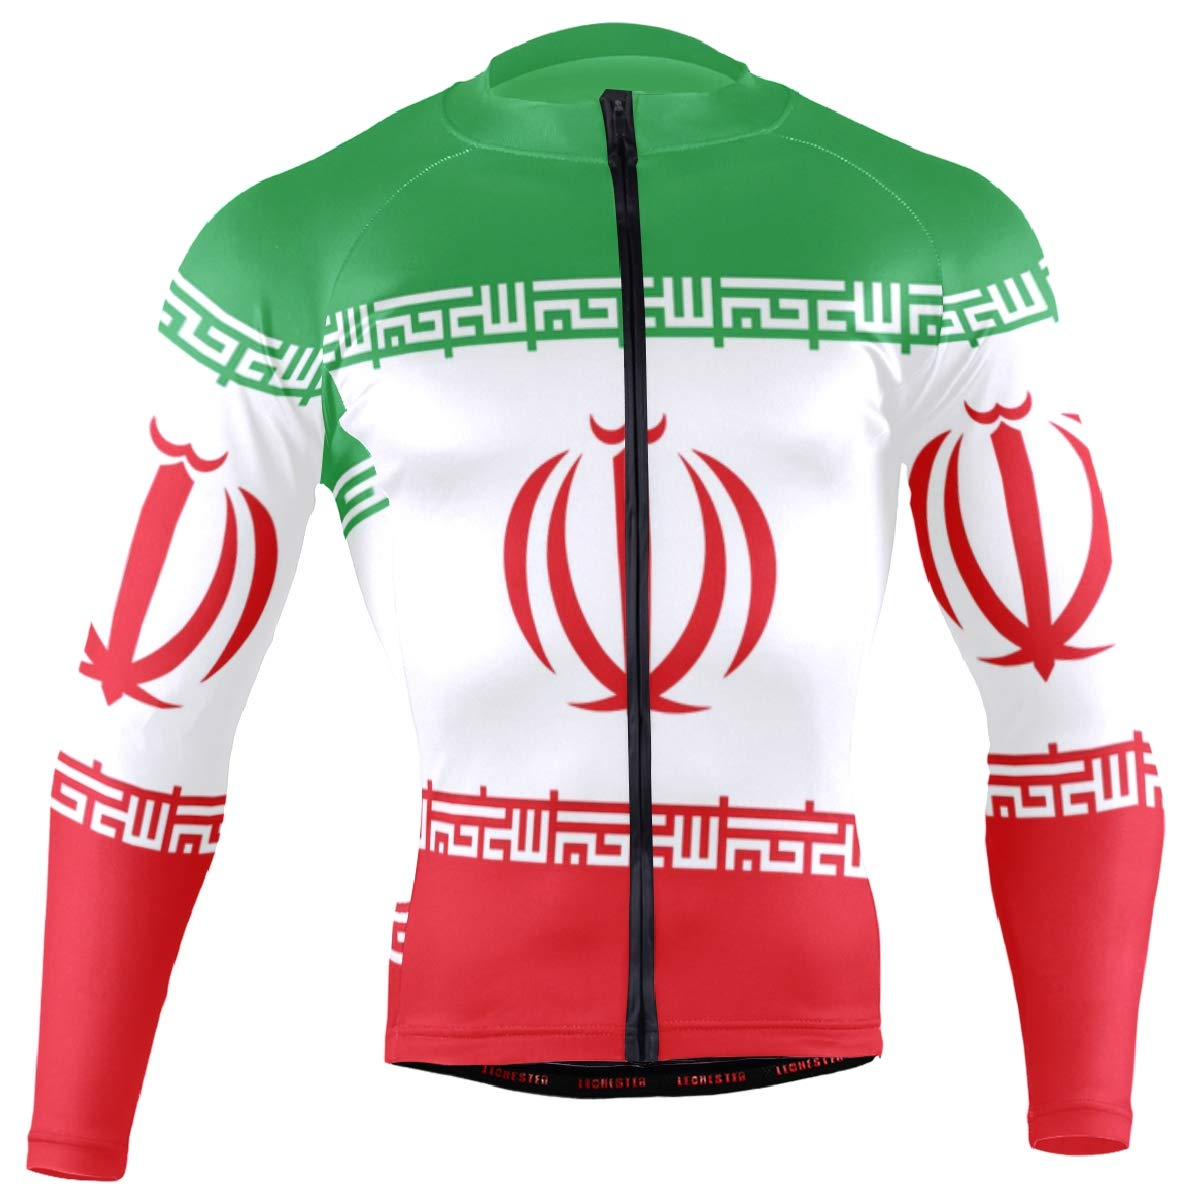 CHINEIN Men's Cycling Jersey Long Sleeve with 3 Rear Pockets Shirt Iran Flag